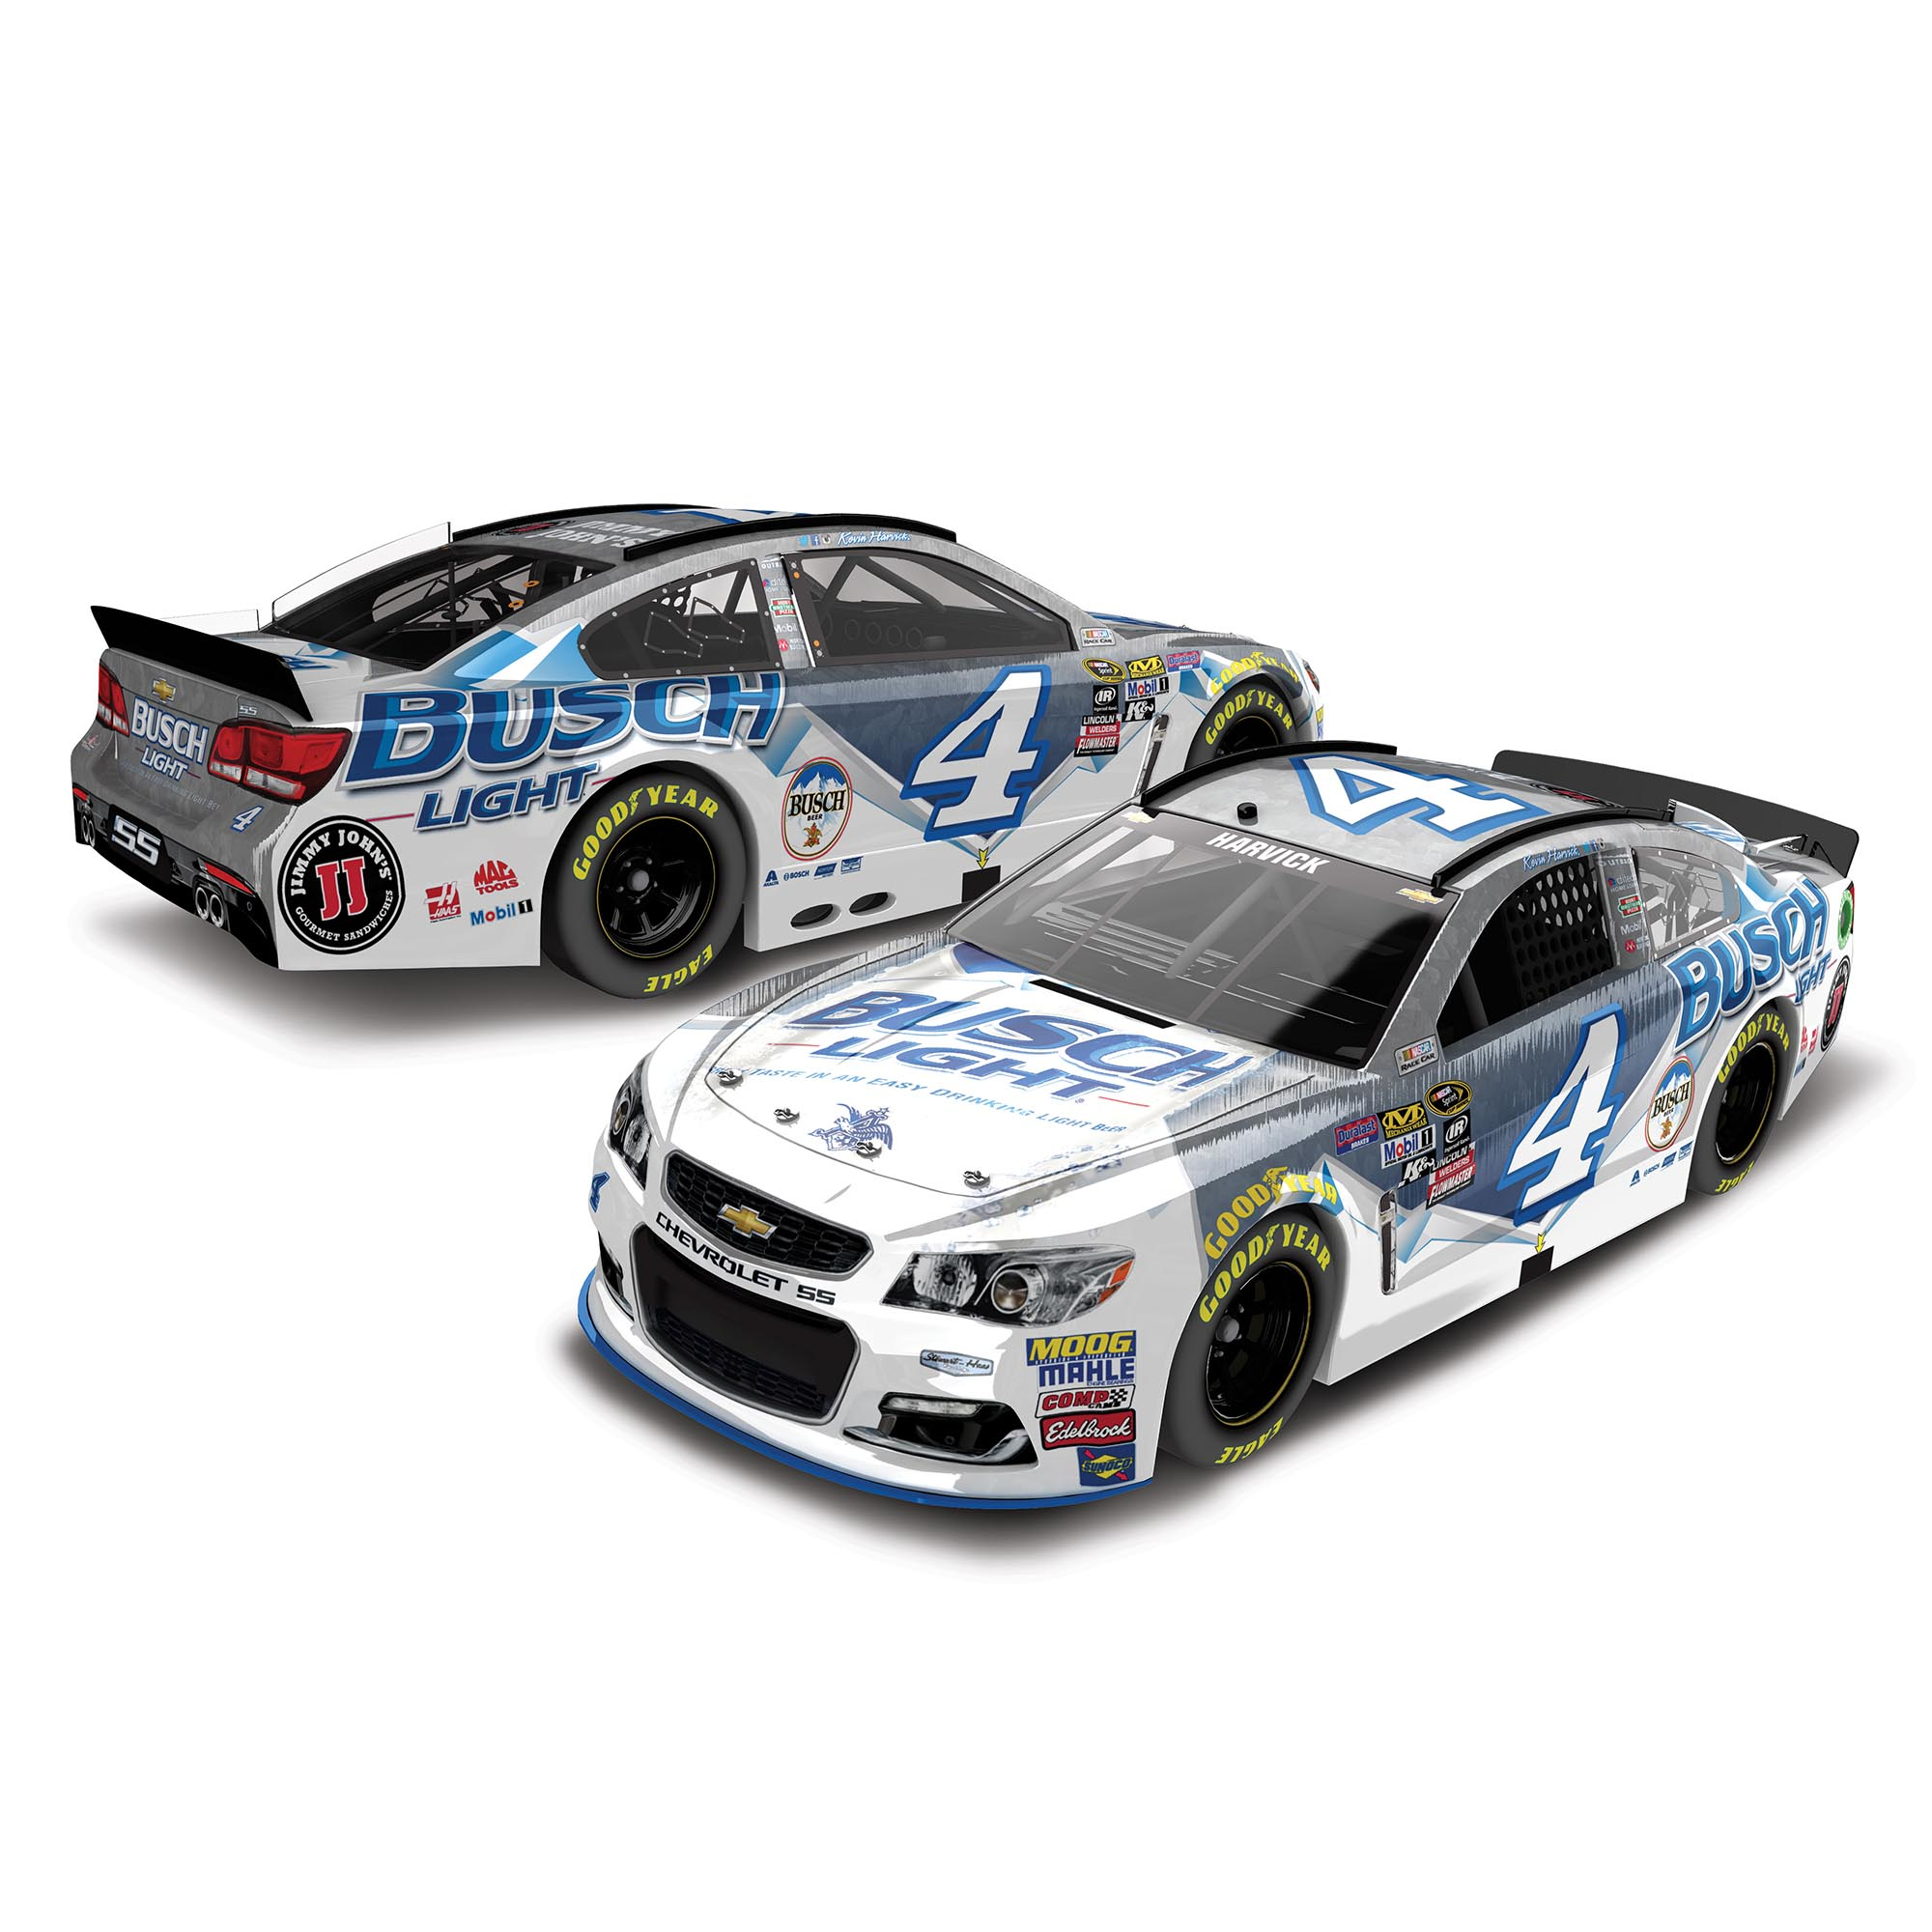 Action Racing Kevin Harvick 2016 #4 Busch Light 1:24 Nascar Sprint Cup Series Raw Die-Cast... by Lionel LLC